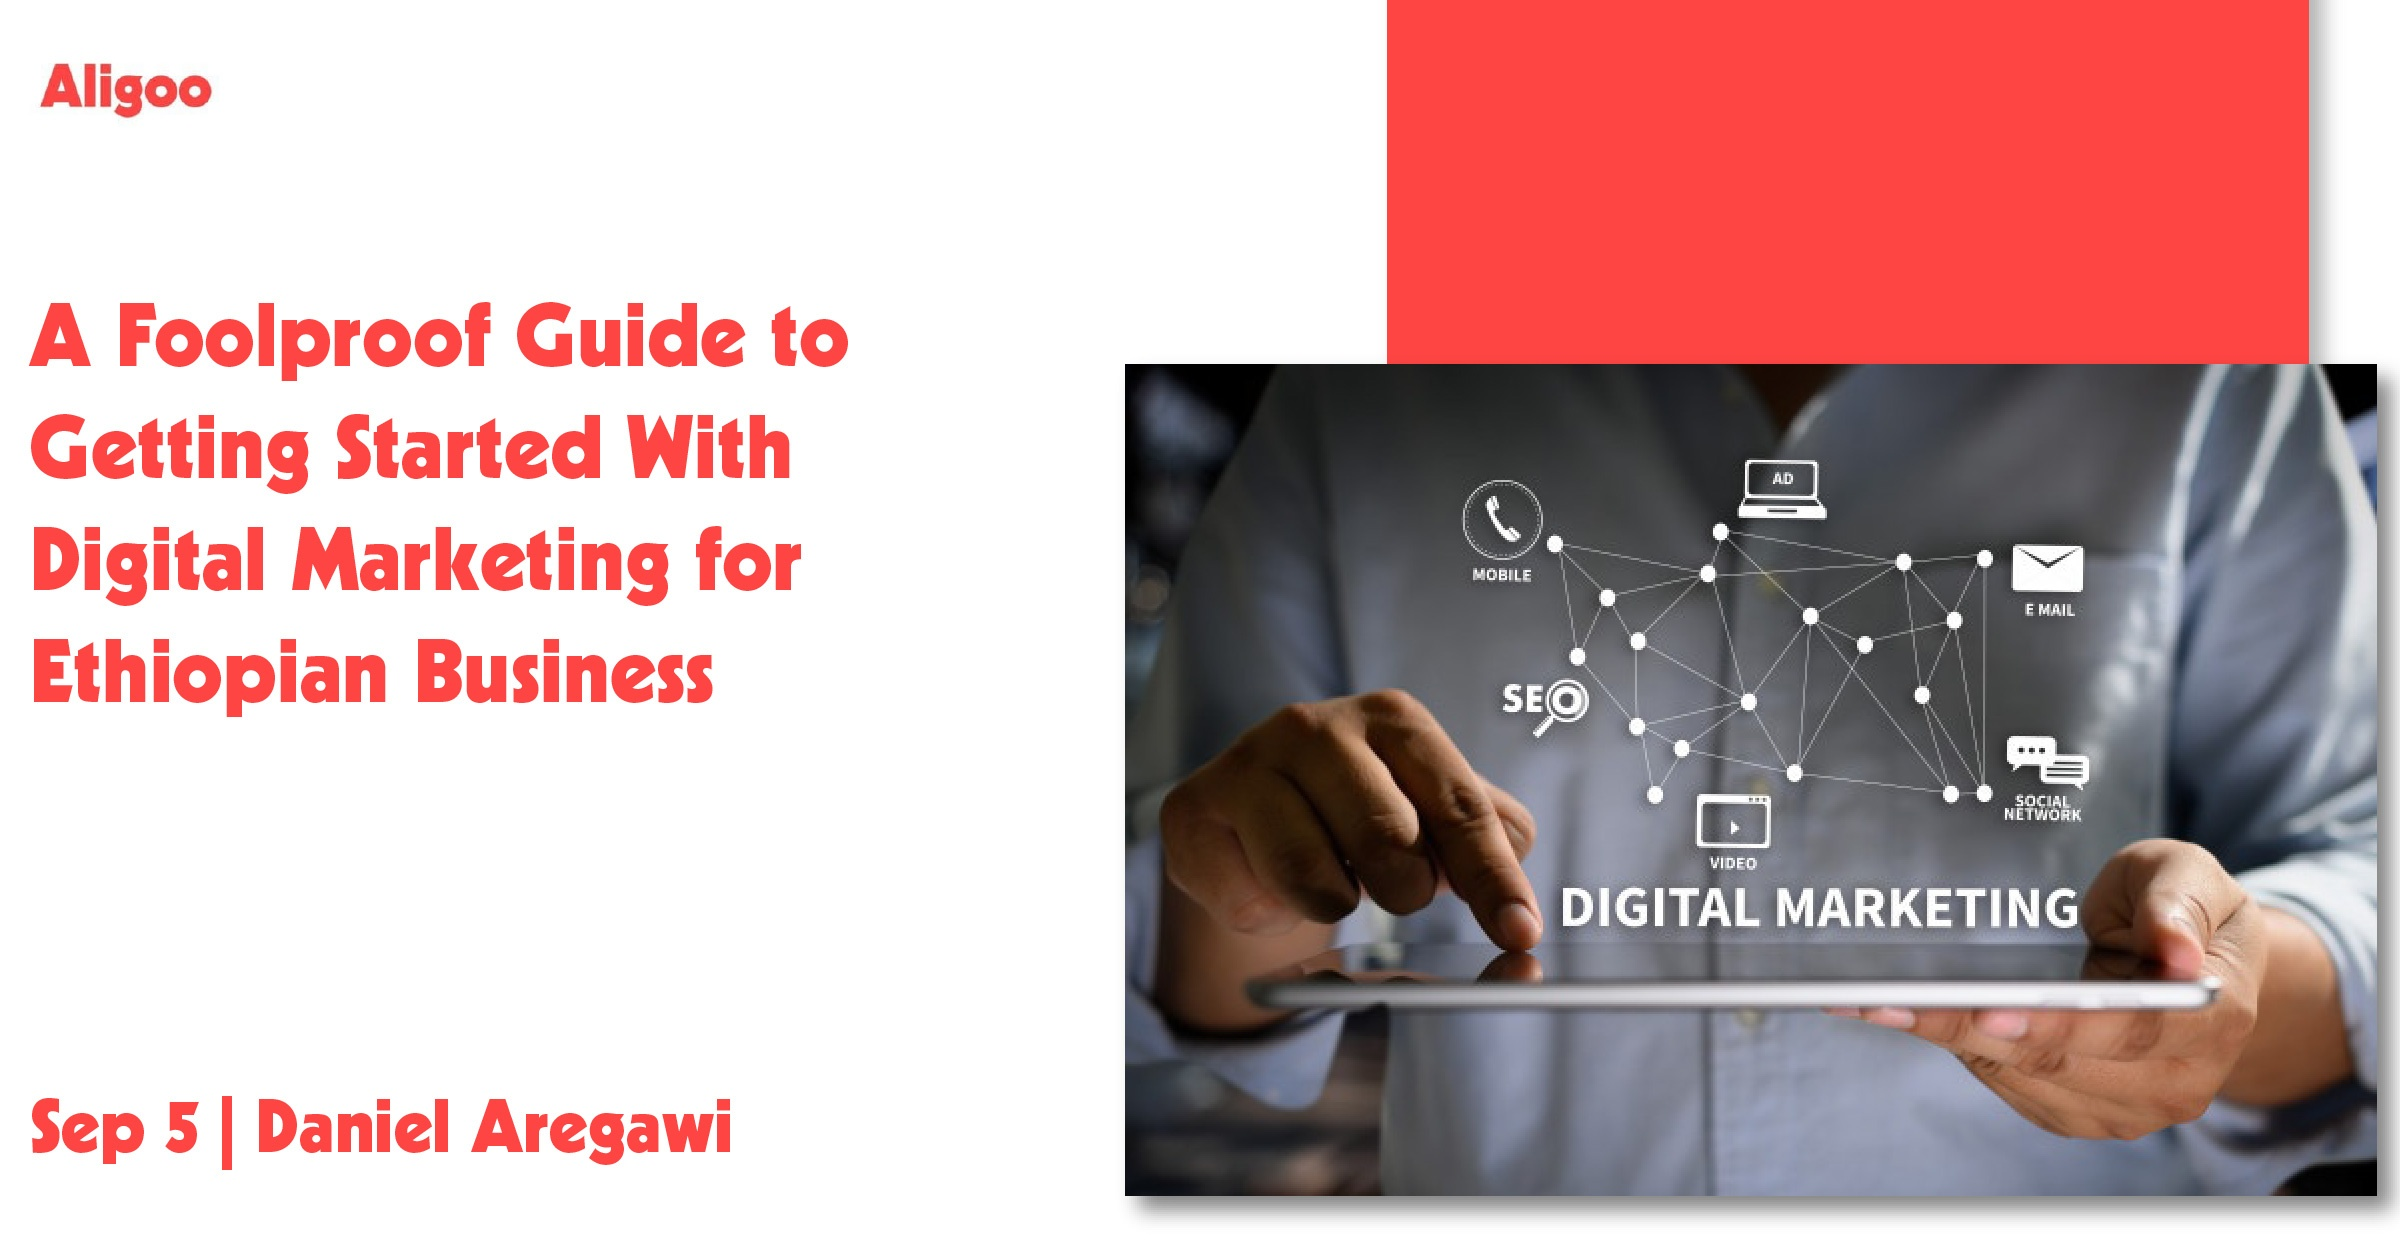 A Foolproof Guide to Getting Started With Digital Marketing for Ethiopian Businesses